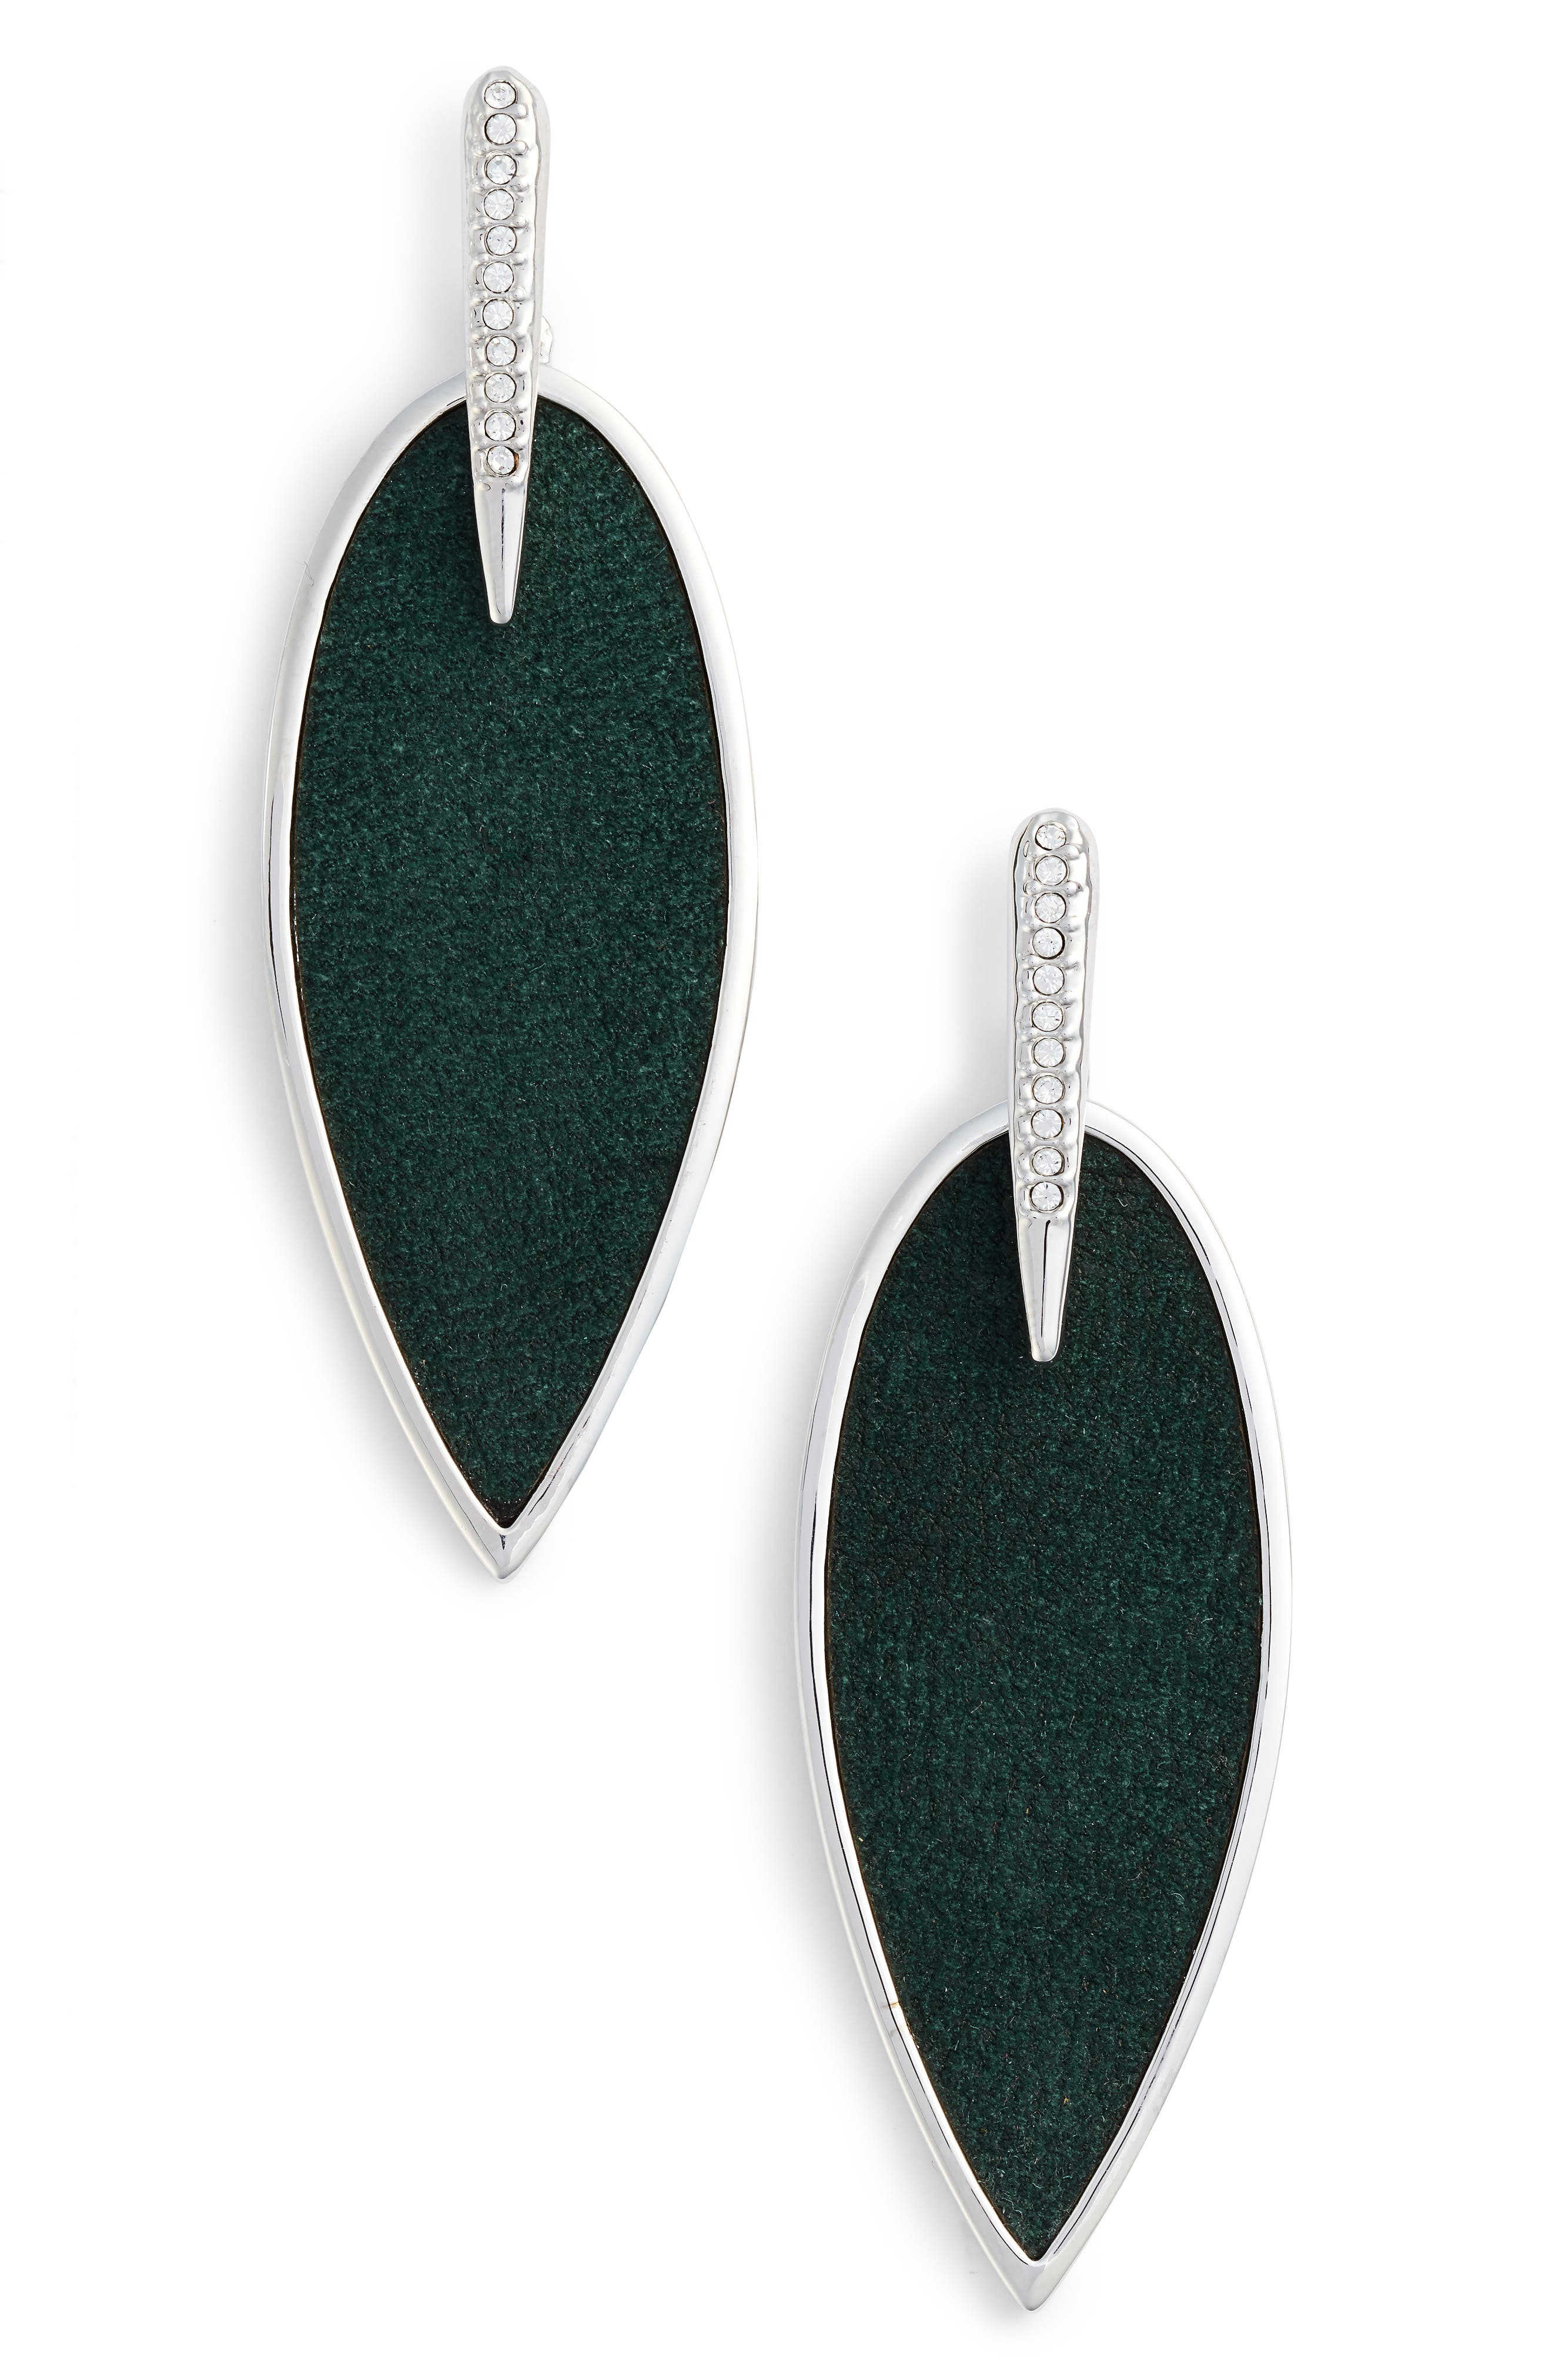 Inlaid Leather Statement Earrings,                             Main thumbnail 1, color,                             040